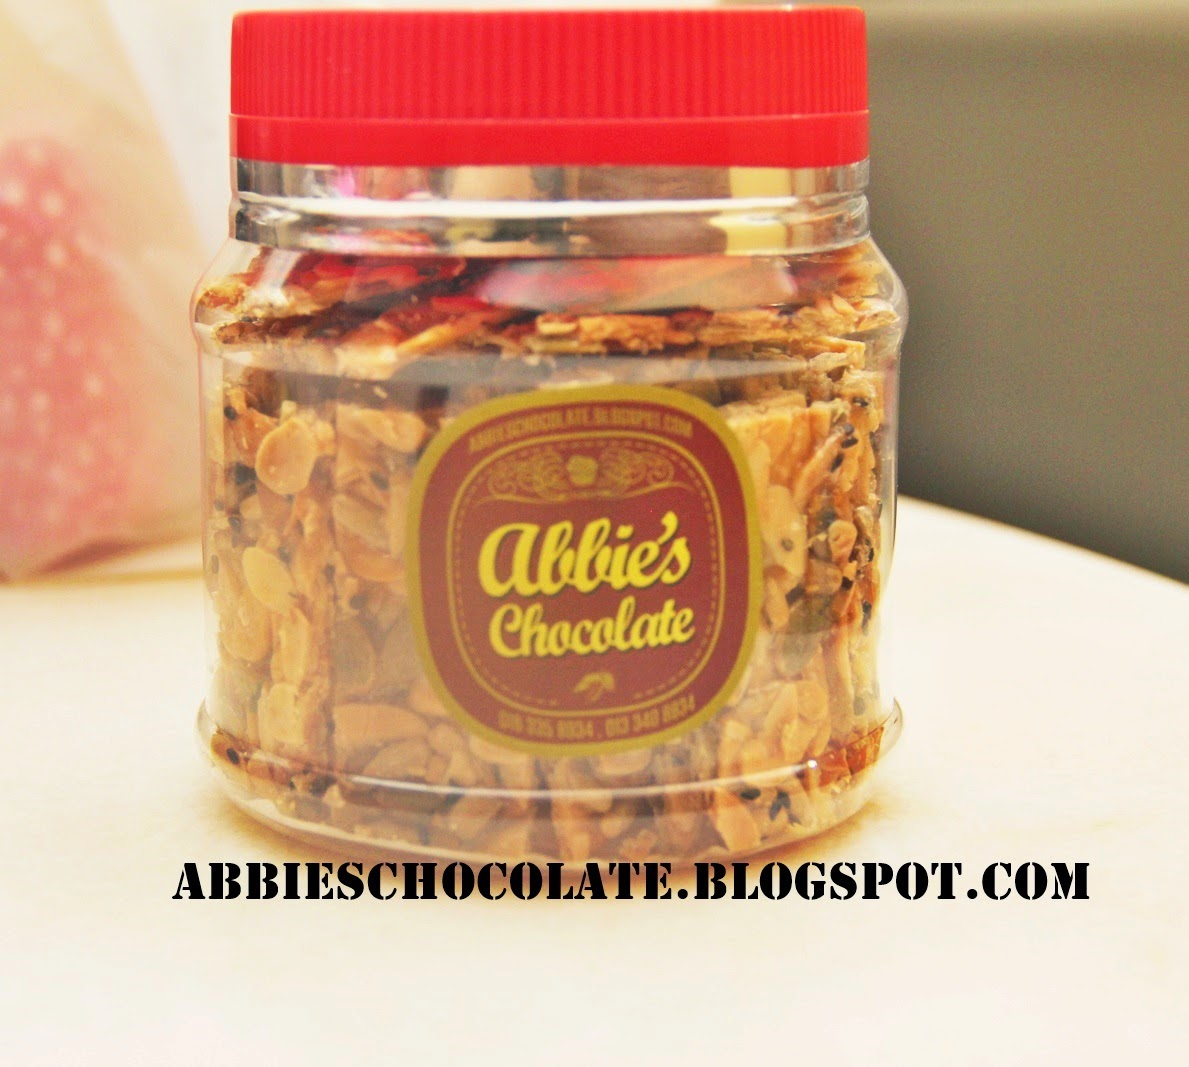 Chocolate For Wedding Door Gift : Abbies Chocolate: CHOCOLATE FOR WEDDING DOOR GIFT (Lovely yet ...